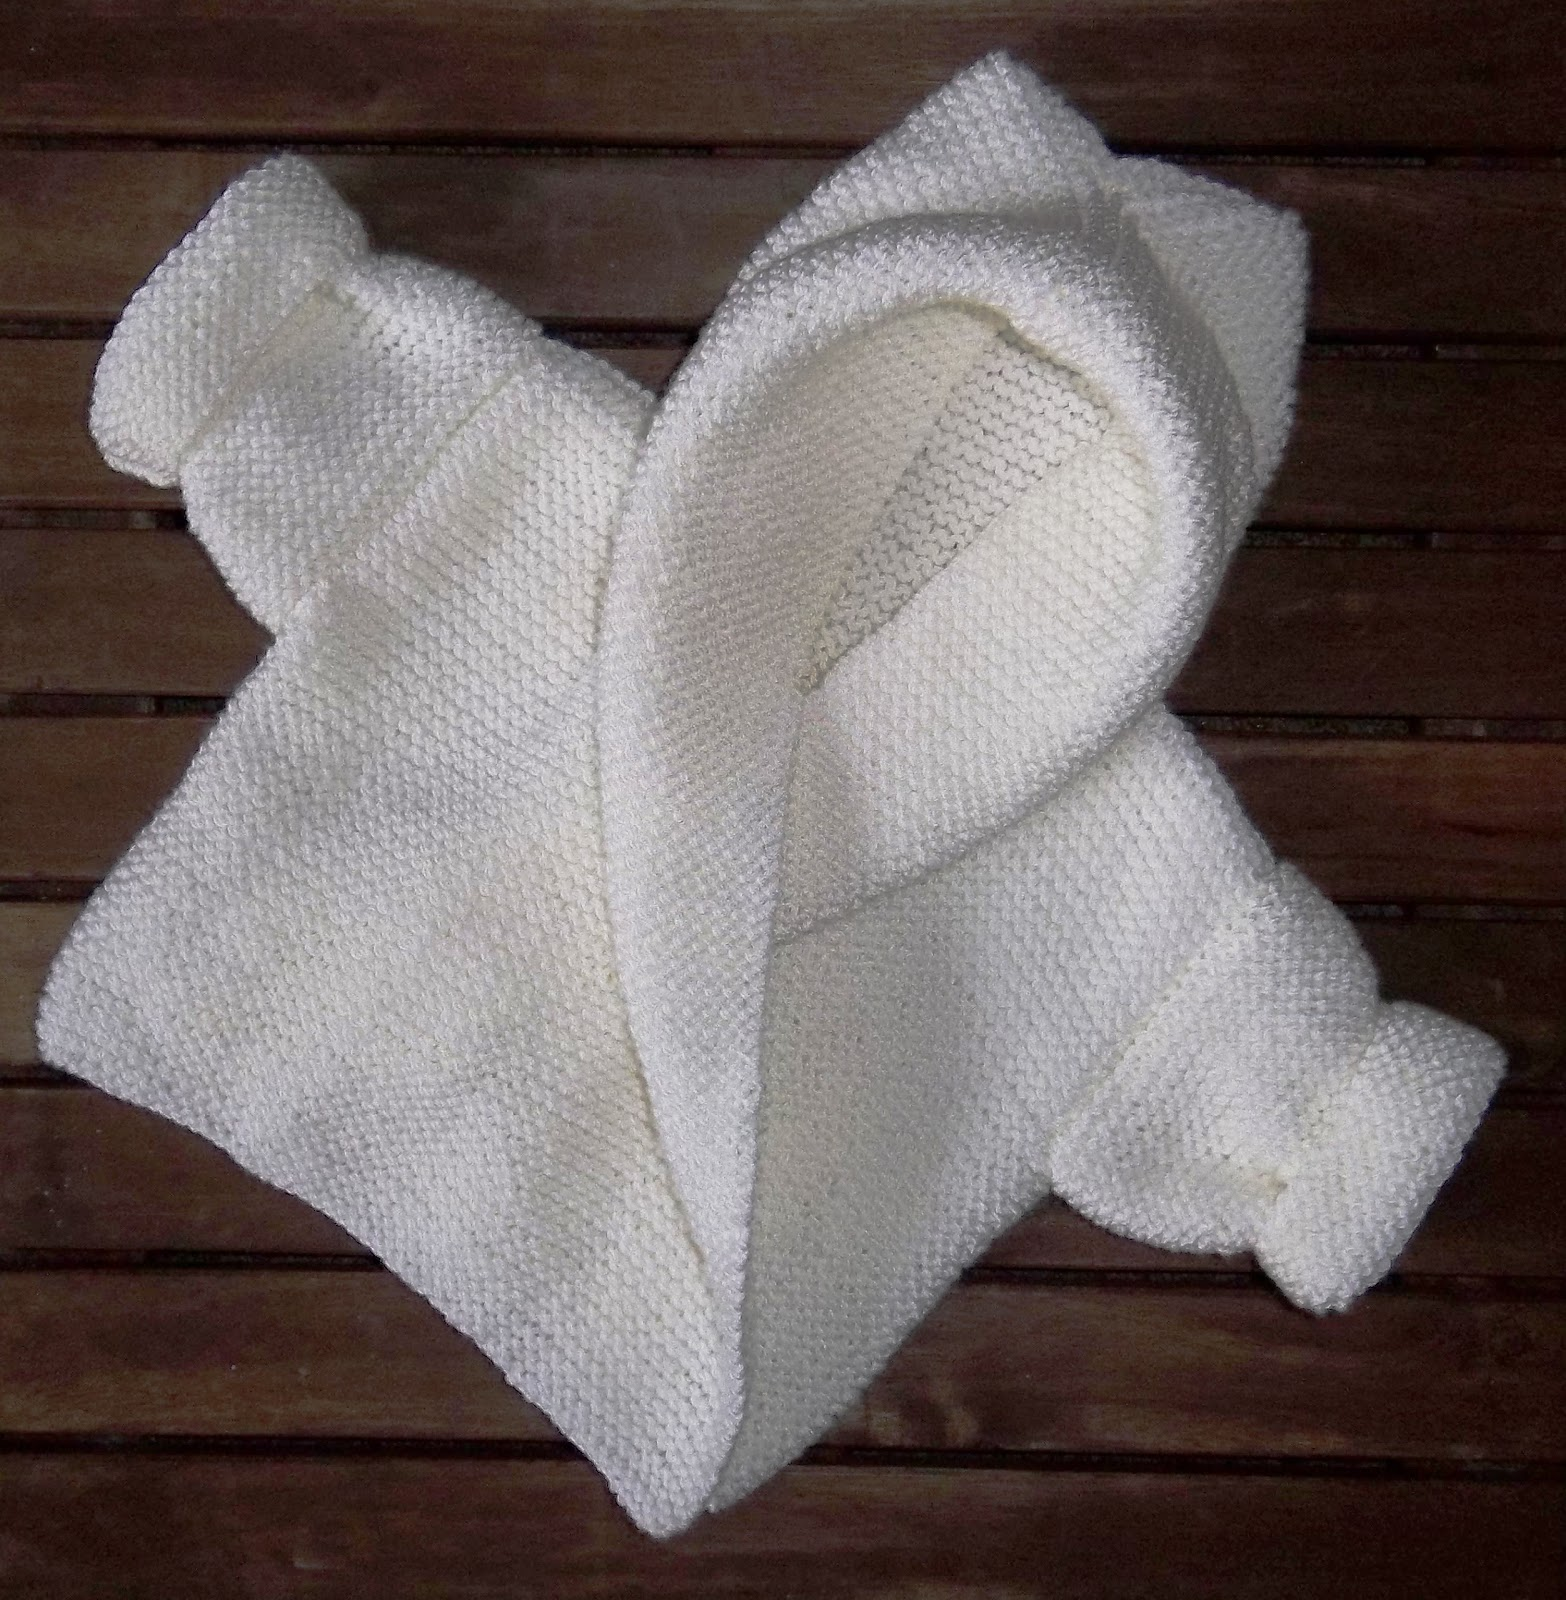 Free Online Knitting Patterns For Baby Blankets : Service Temporarily Unavailable